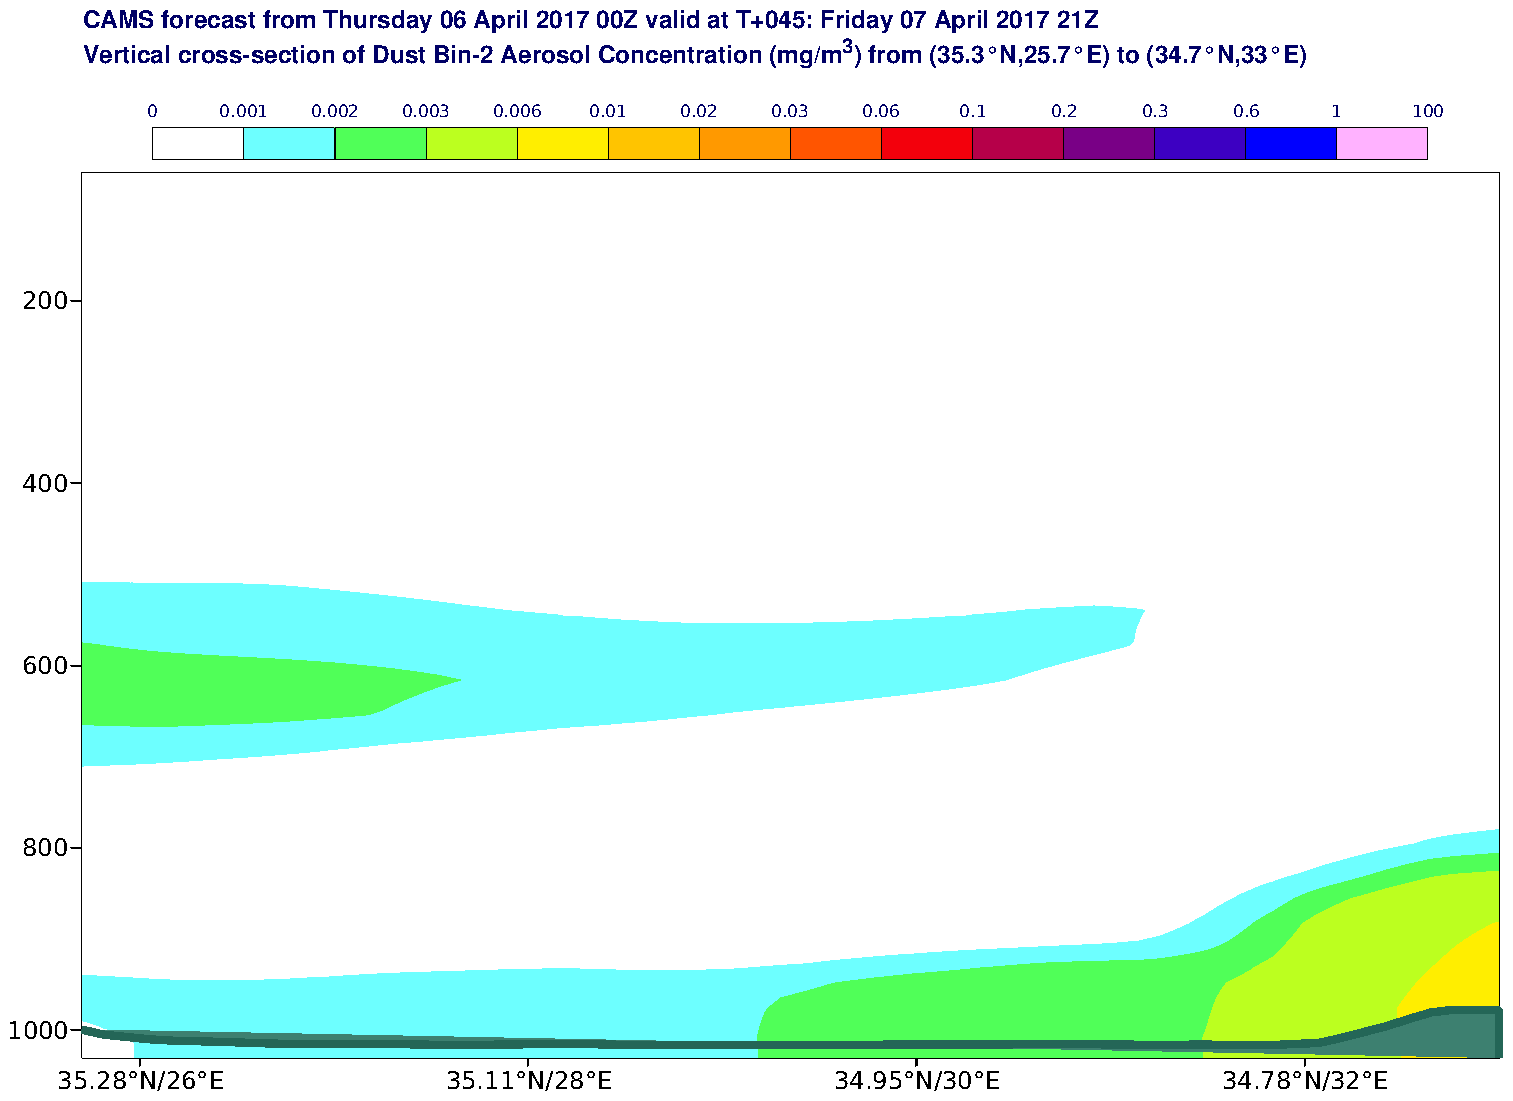 Vertical cross-section of Dust Bin-2 Aerosol Concentration (mg/m3) valid at T45 - 2017-04-07 21:00